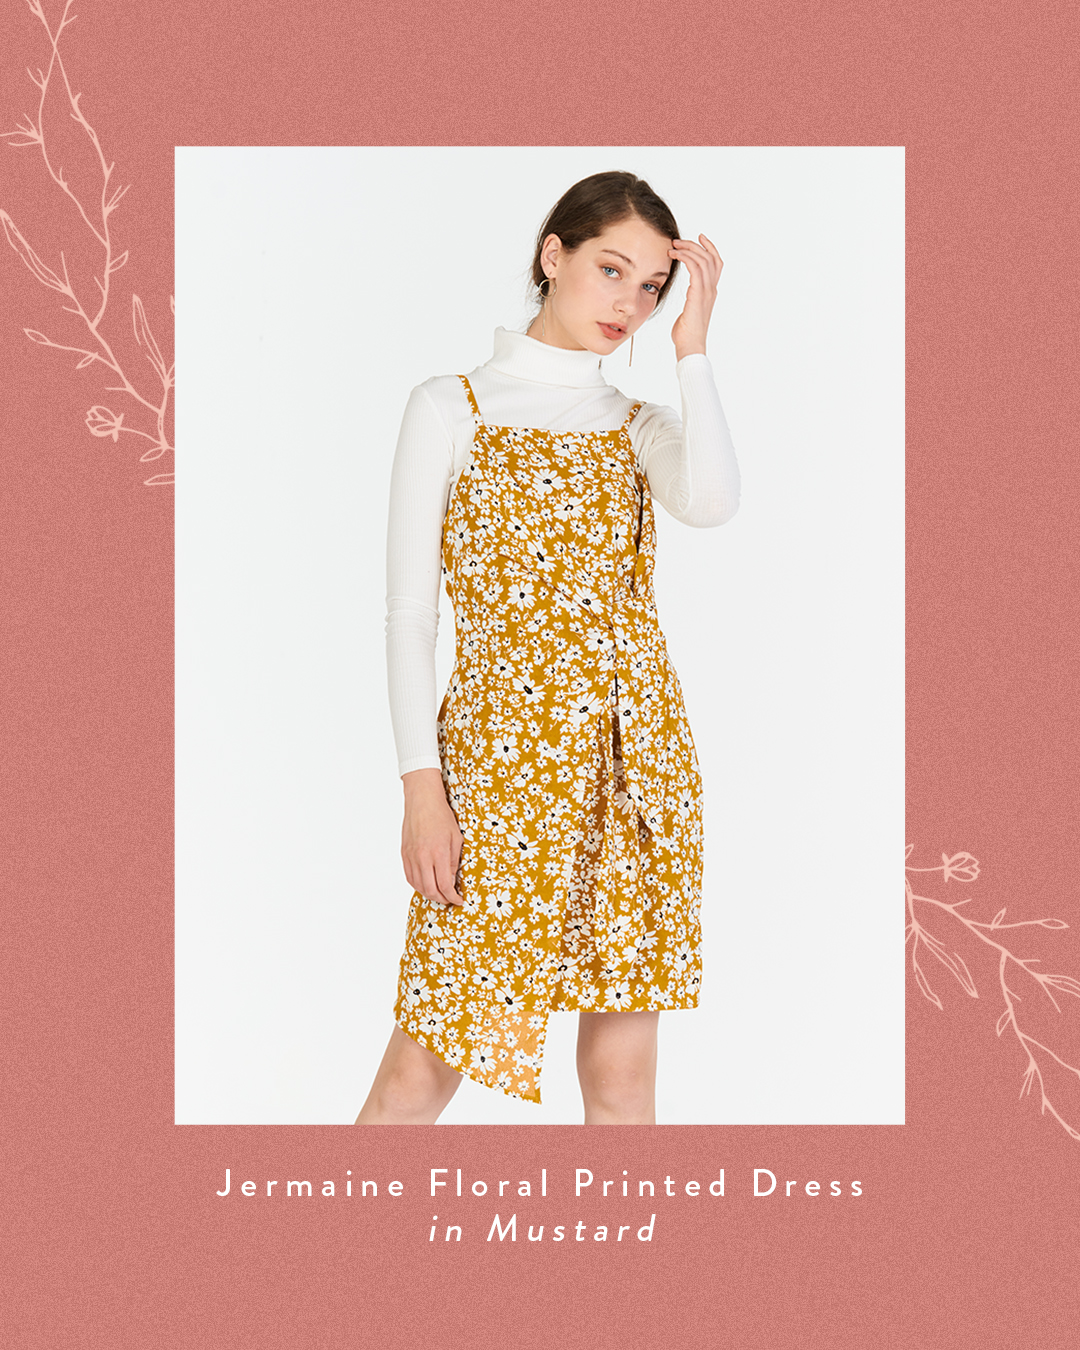 Jermaine Floral Printed Dress